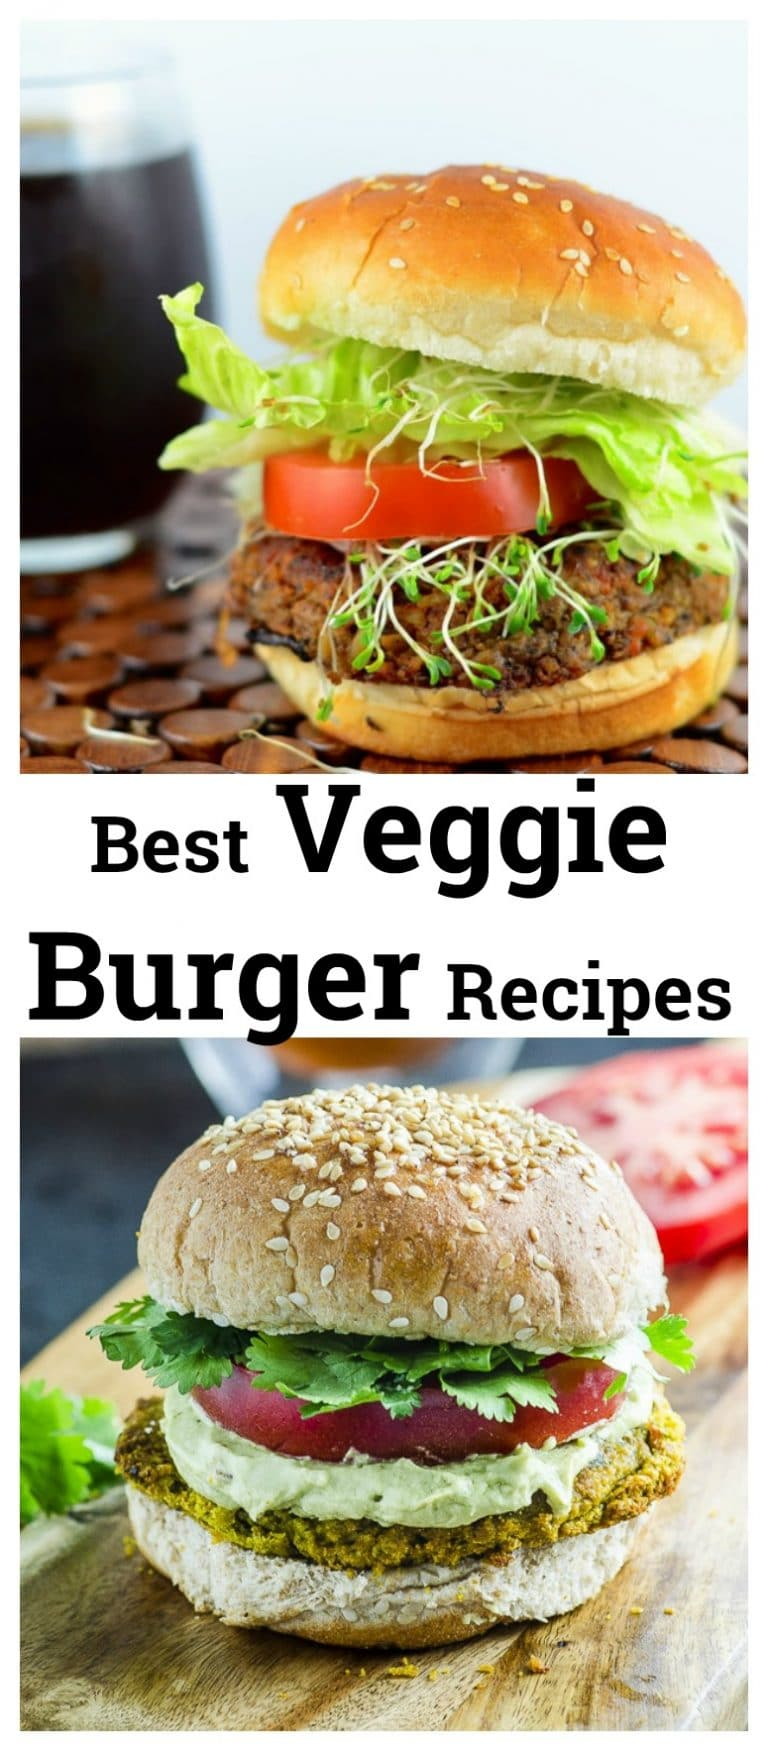 We have gathered our best Veggie Burger Recipes for you. From our super popular Black Bean Veggie Burger to our tasty Chickpea and Beet veggie burger and our satisfying Falafel Veggie Burger with Tahini Cream.  All super flavorful and nutritious, to guarantee you won't miss the meat! #veggie Burger #vegan #sandwich #BBQ